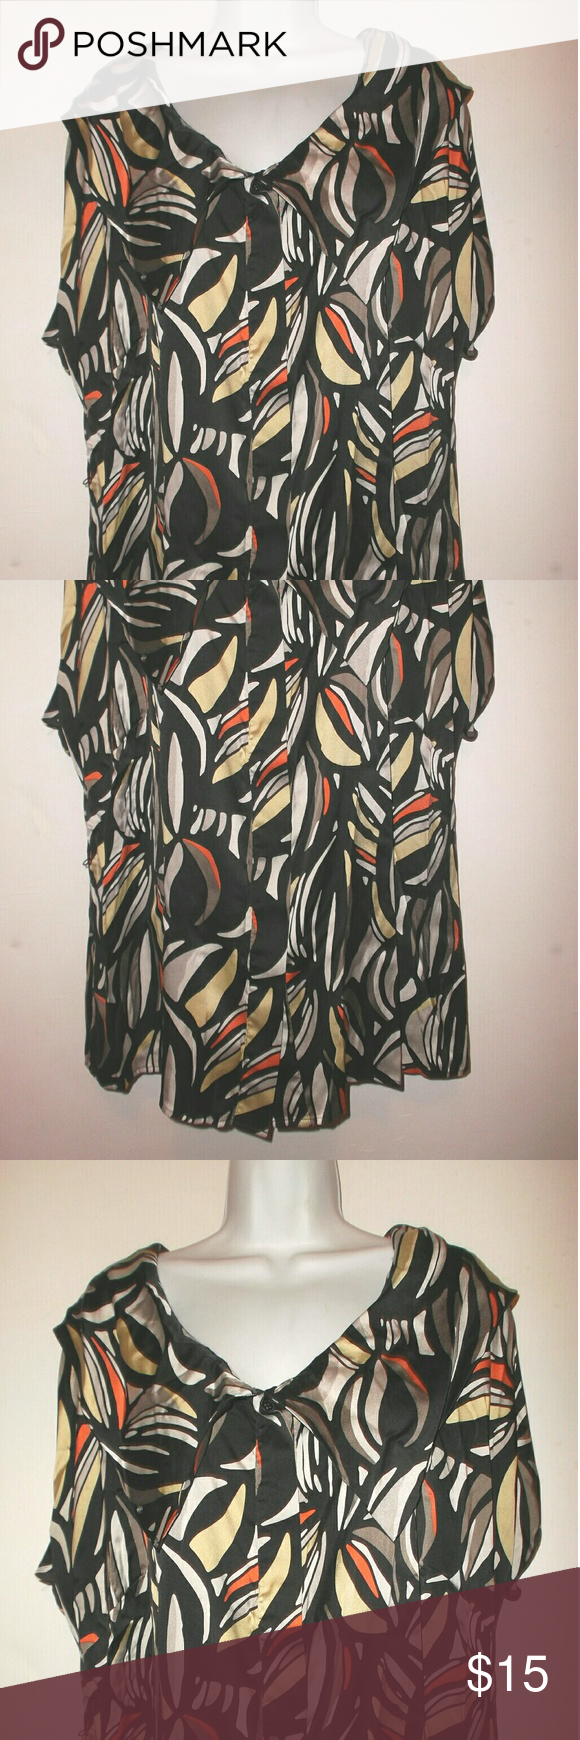 Nordstrom Semantiks Stretch Silk Blouse 16W A beautiful stretch silk blouse.   Women's plus size 16W.   93 % Silk,  7 % spandex fabric.   Has a wide collar and hidden buttons down the front.   There are thread belt loops but no belt is included.   Nice pre-owned condition!   Measures 25.5 inches across the front from underarm to underarm.   29 inches shoulder to bottom hem Semantiks Tops Blouses